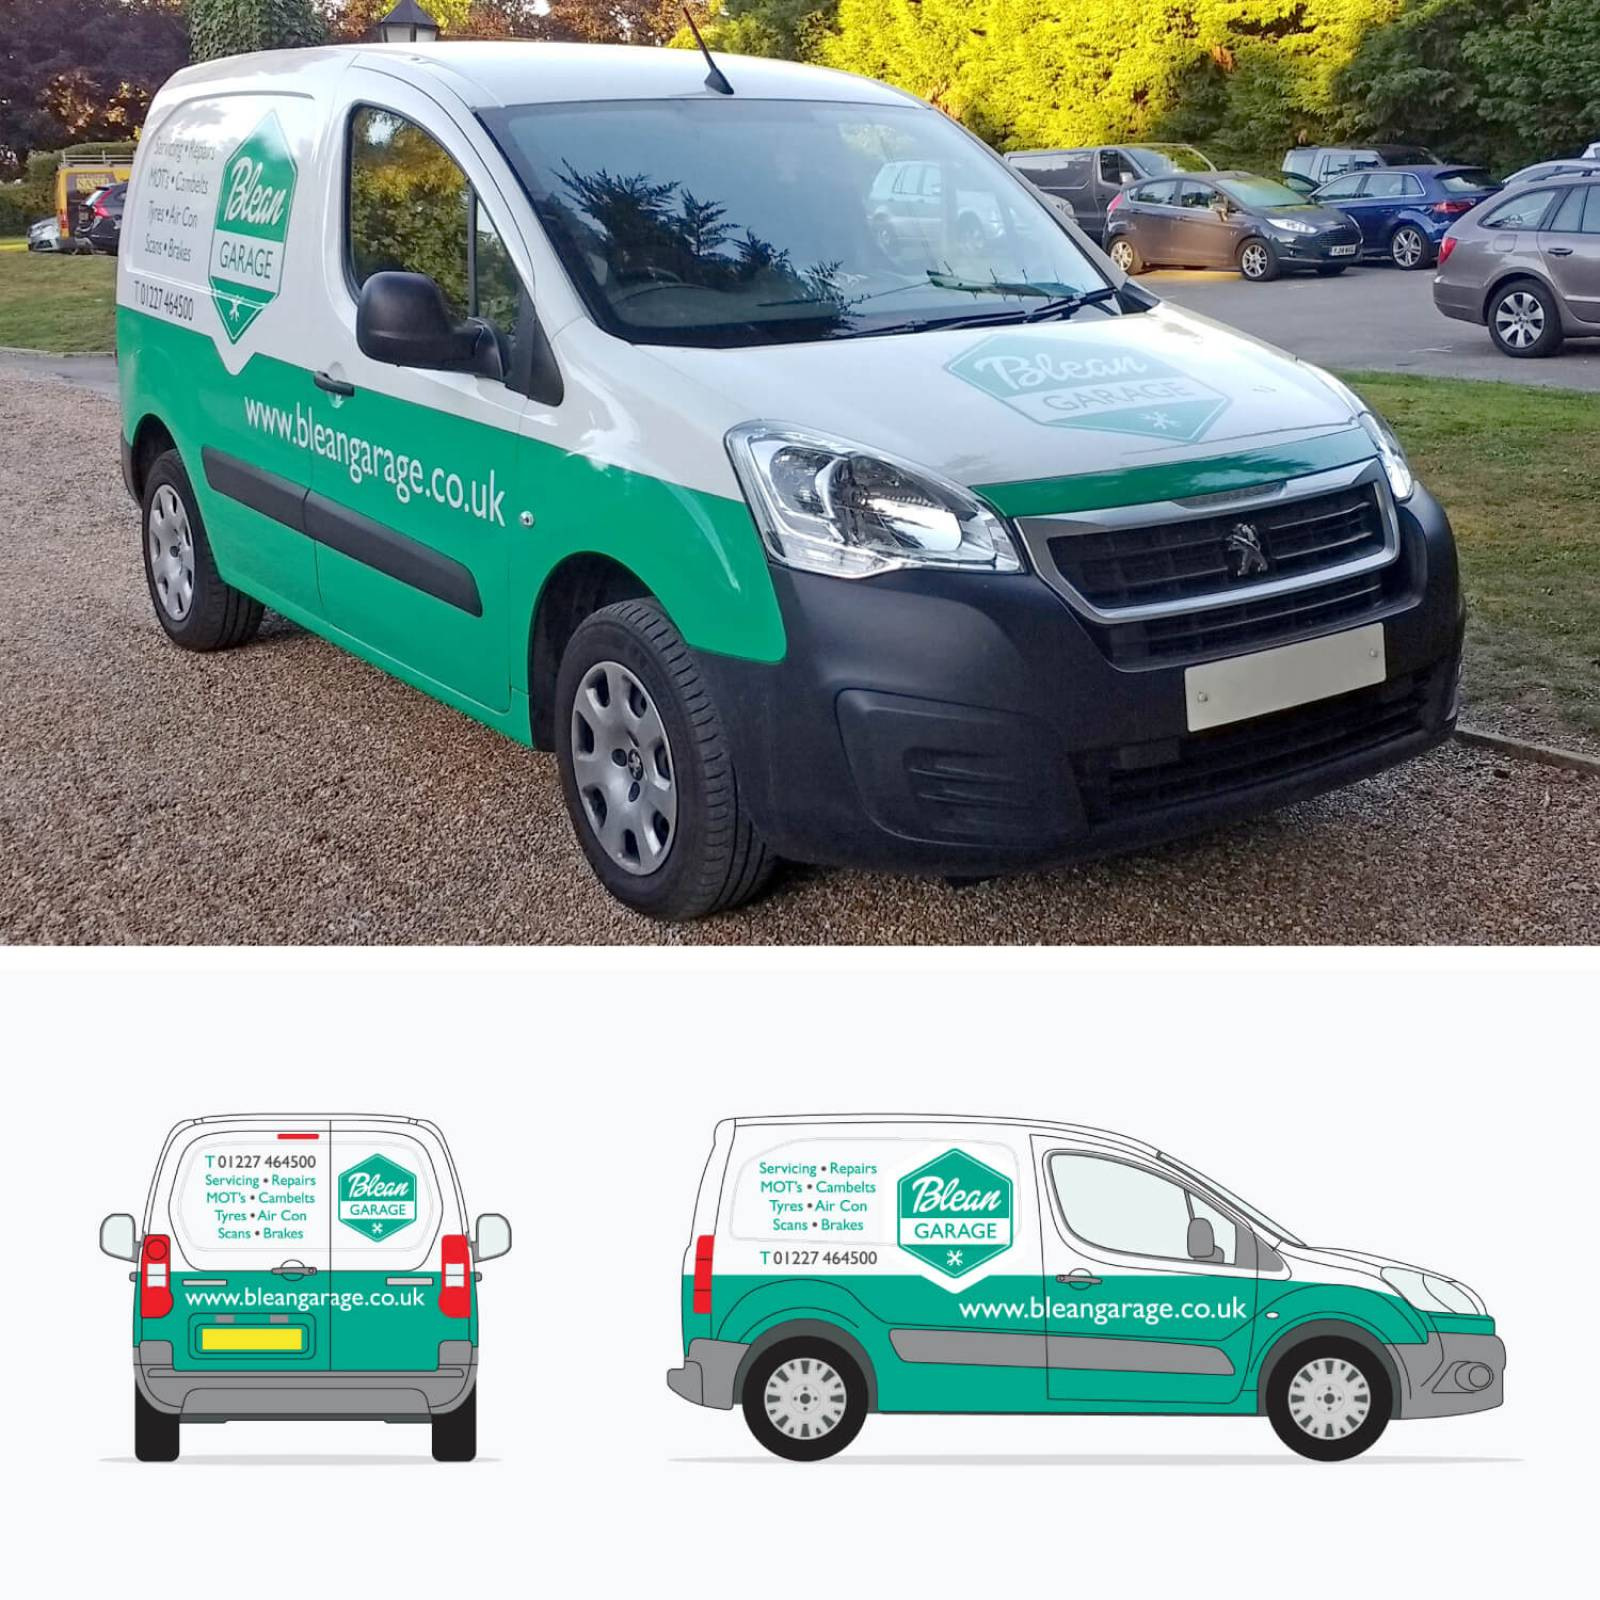 Vehicle-3-Blean-Canterbury-Graphic-Design.jpg